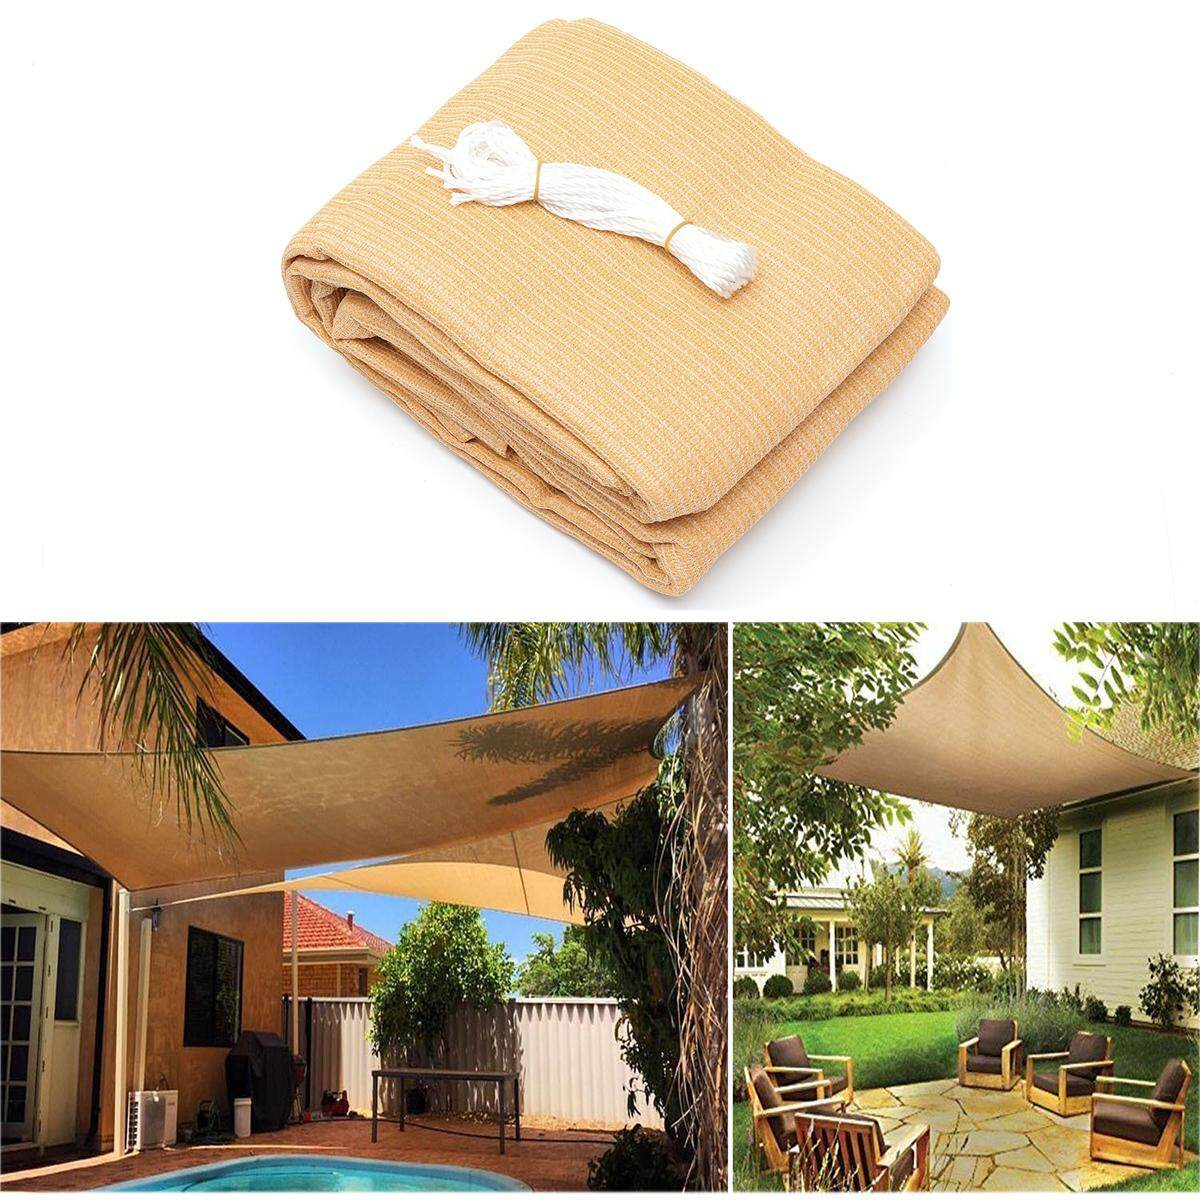 3*4m 280gsm Hdpe Sun Shade Sail Cloth Canopy Awning Shelter Outdoor By Glimmer.